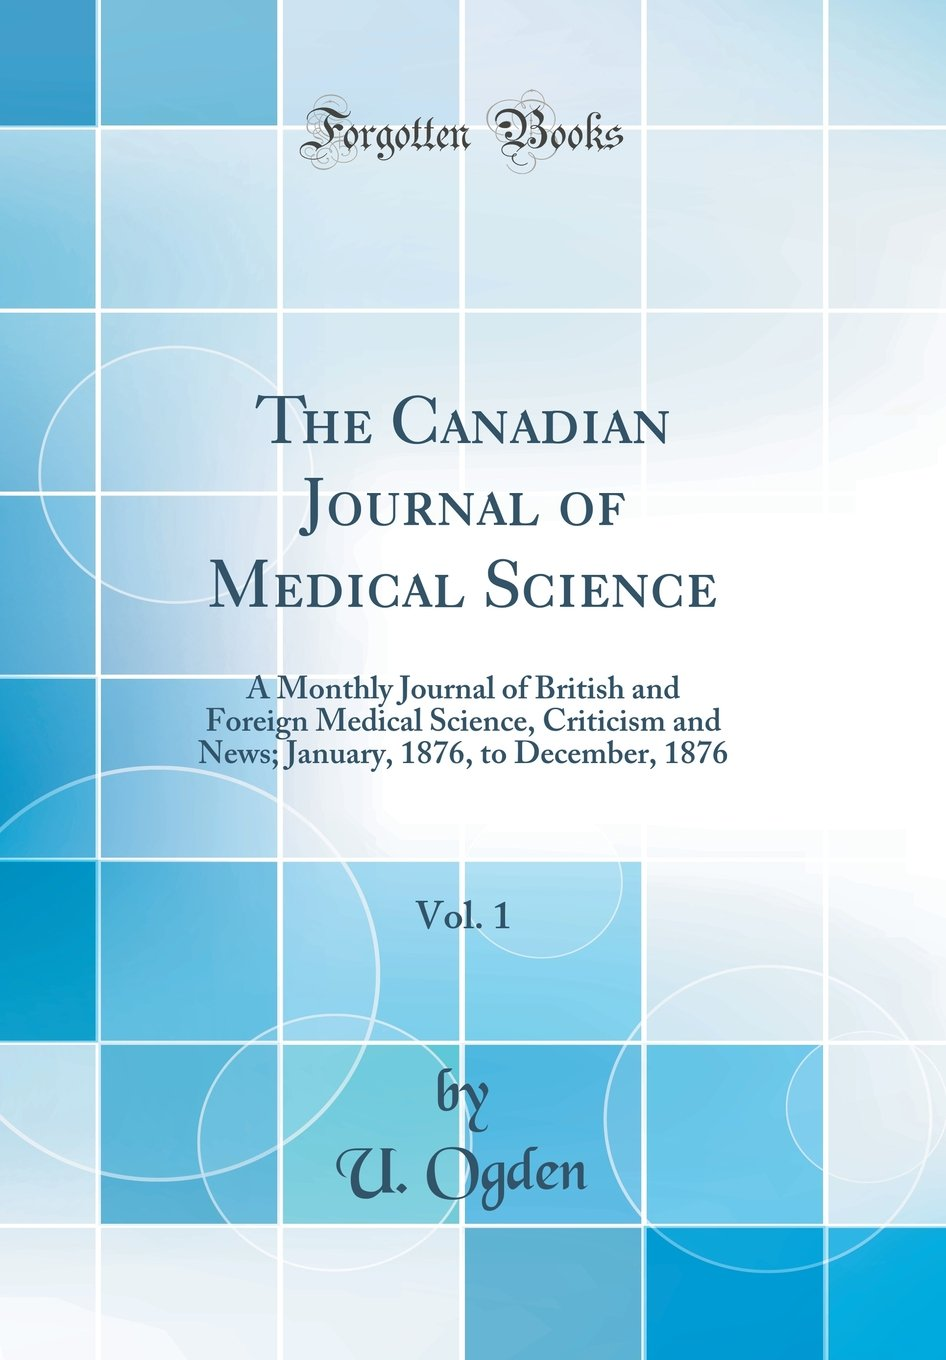 The Canadian Journal of Medical Science, Vol. 1: A Monthly Journal of British and Foreign Medical Science, Criticism and News; January, 1876, to December, 1876 (Classic Reprint) PDF